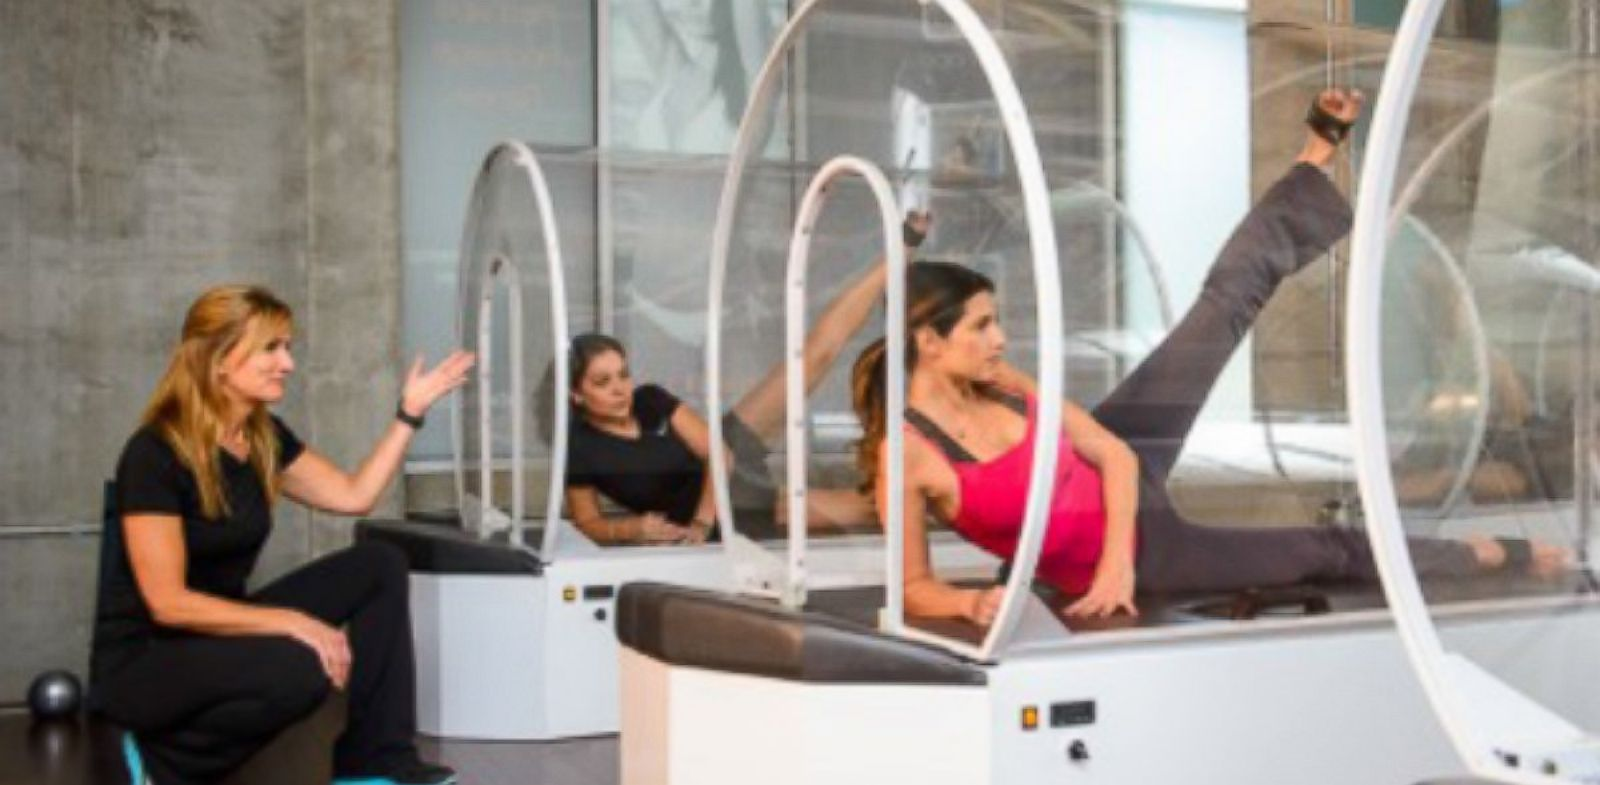 PHOTO: The Iobella workout involves 30 minutes in a pod heated to 98 degrees.